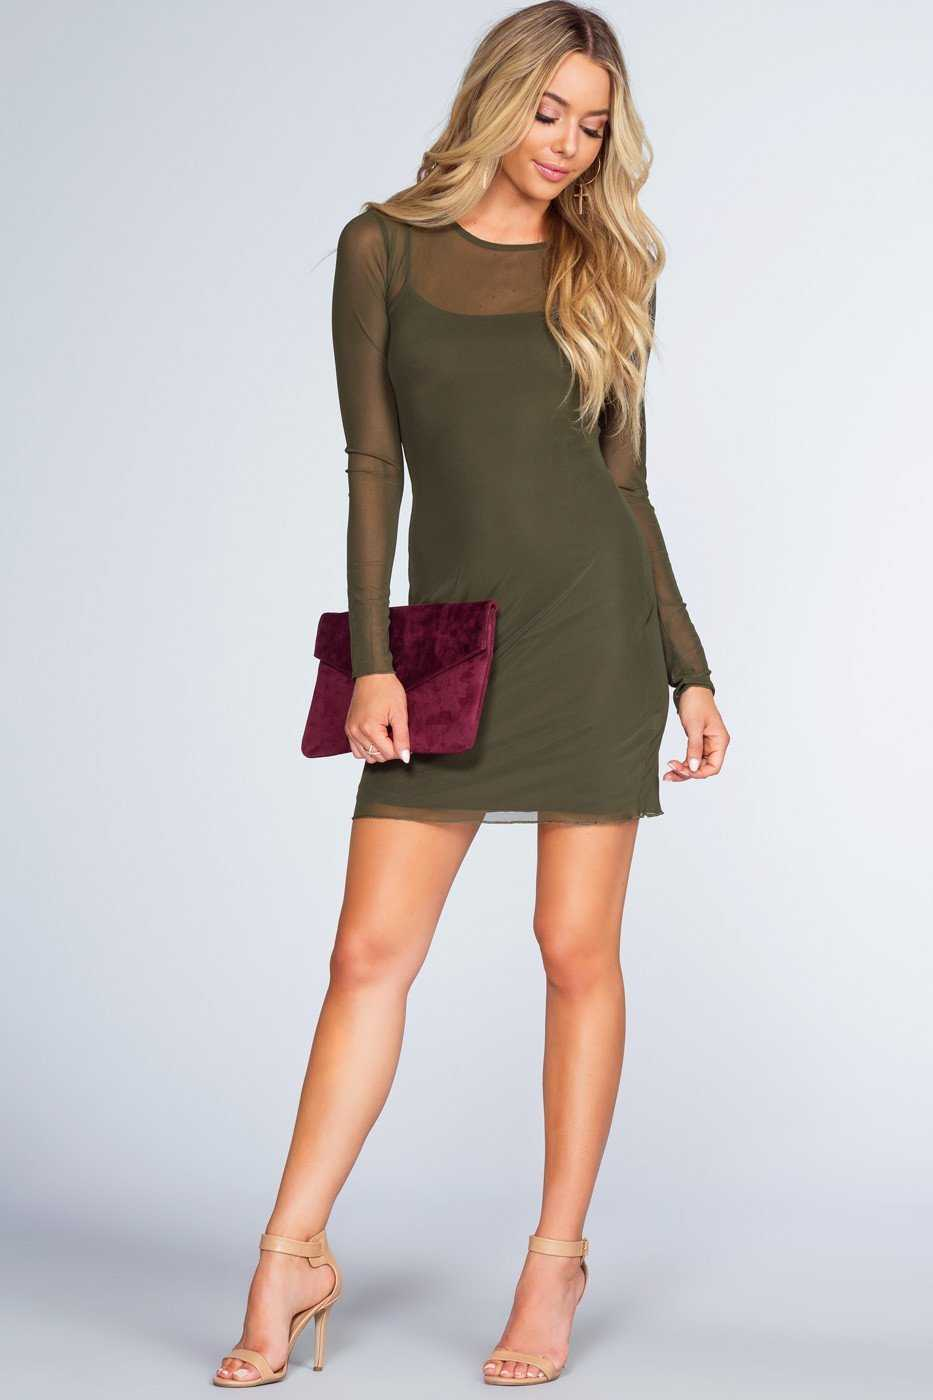 Dresses - Unforgettable Mesh Dress - Olive